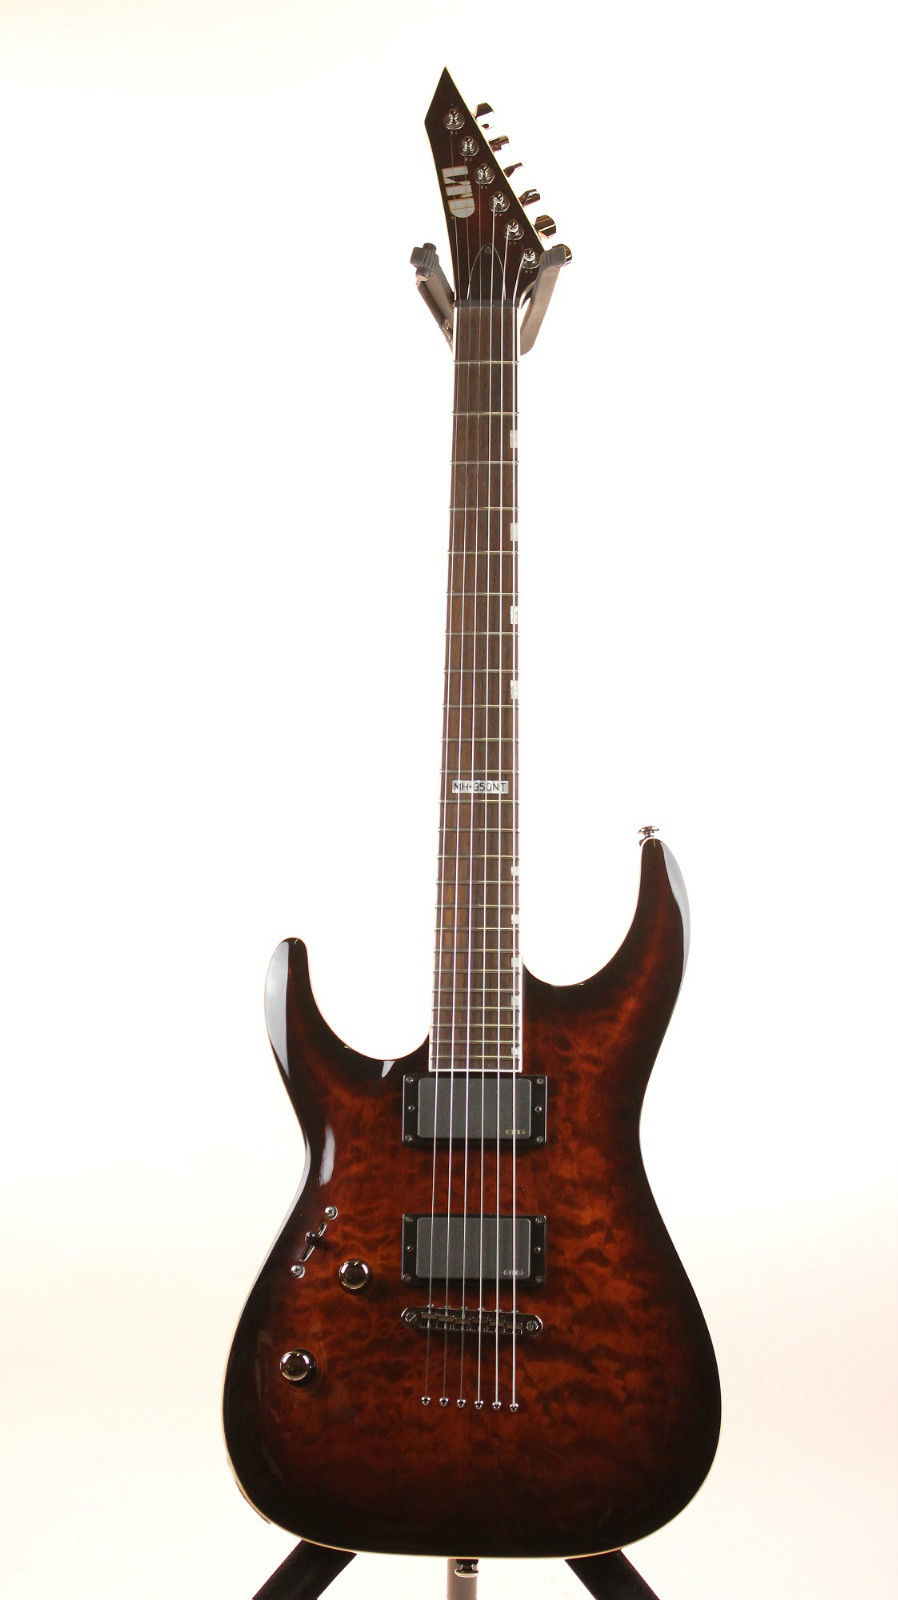 ESP LTD MH-350NT DBSB LH MH Series Left Handed Electric Guitar with Quilted Maple Top Dark Brown Sunburst Finish